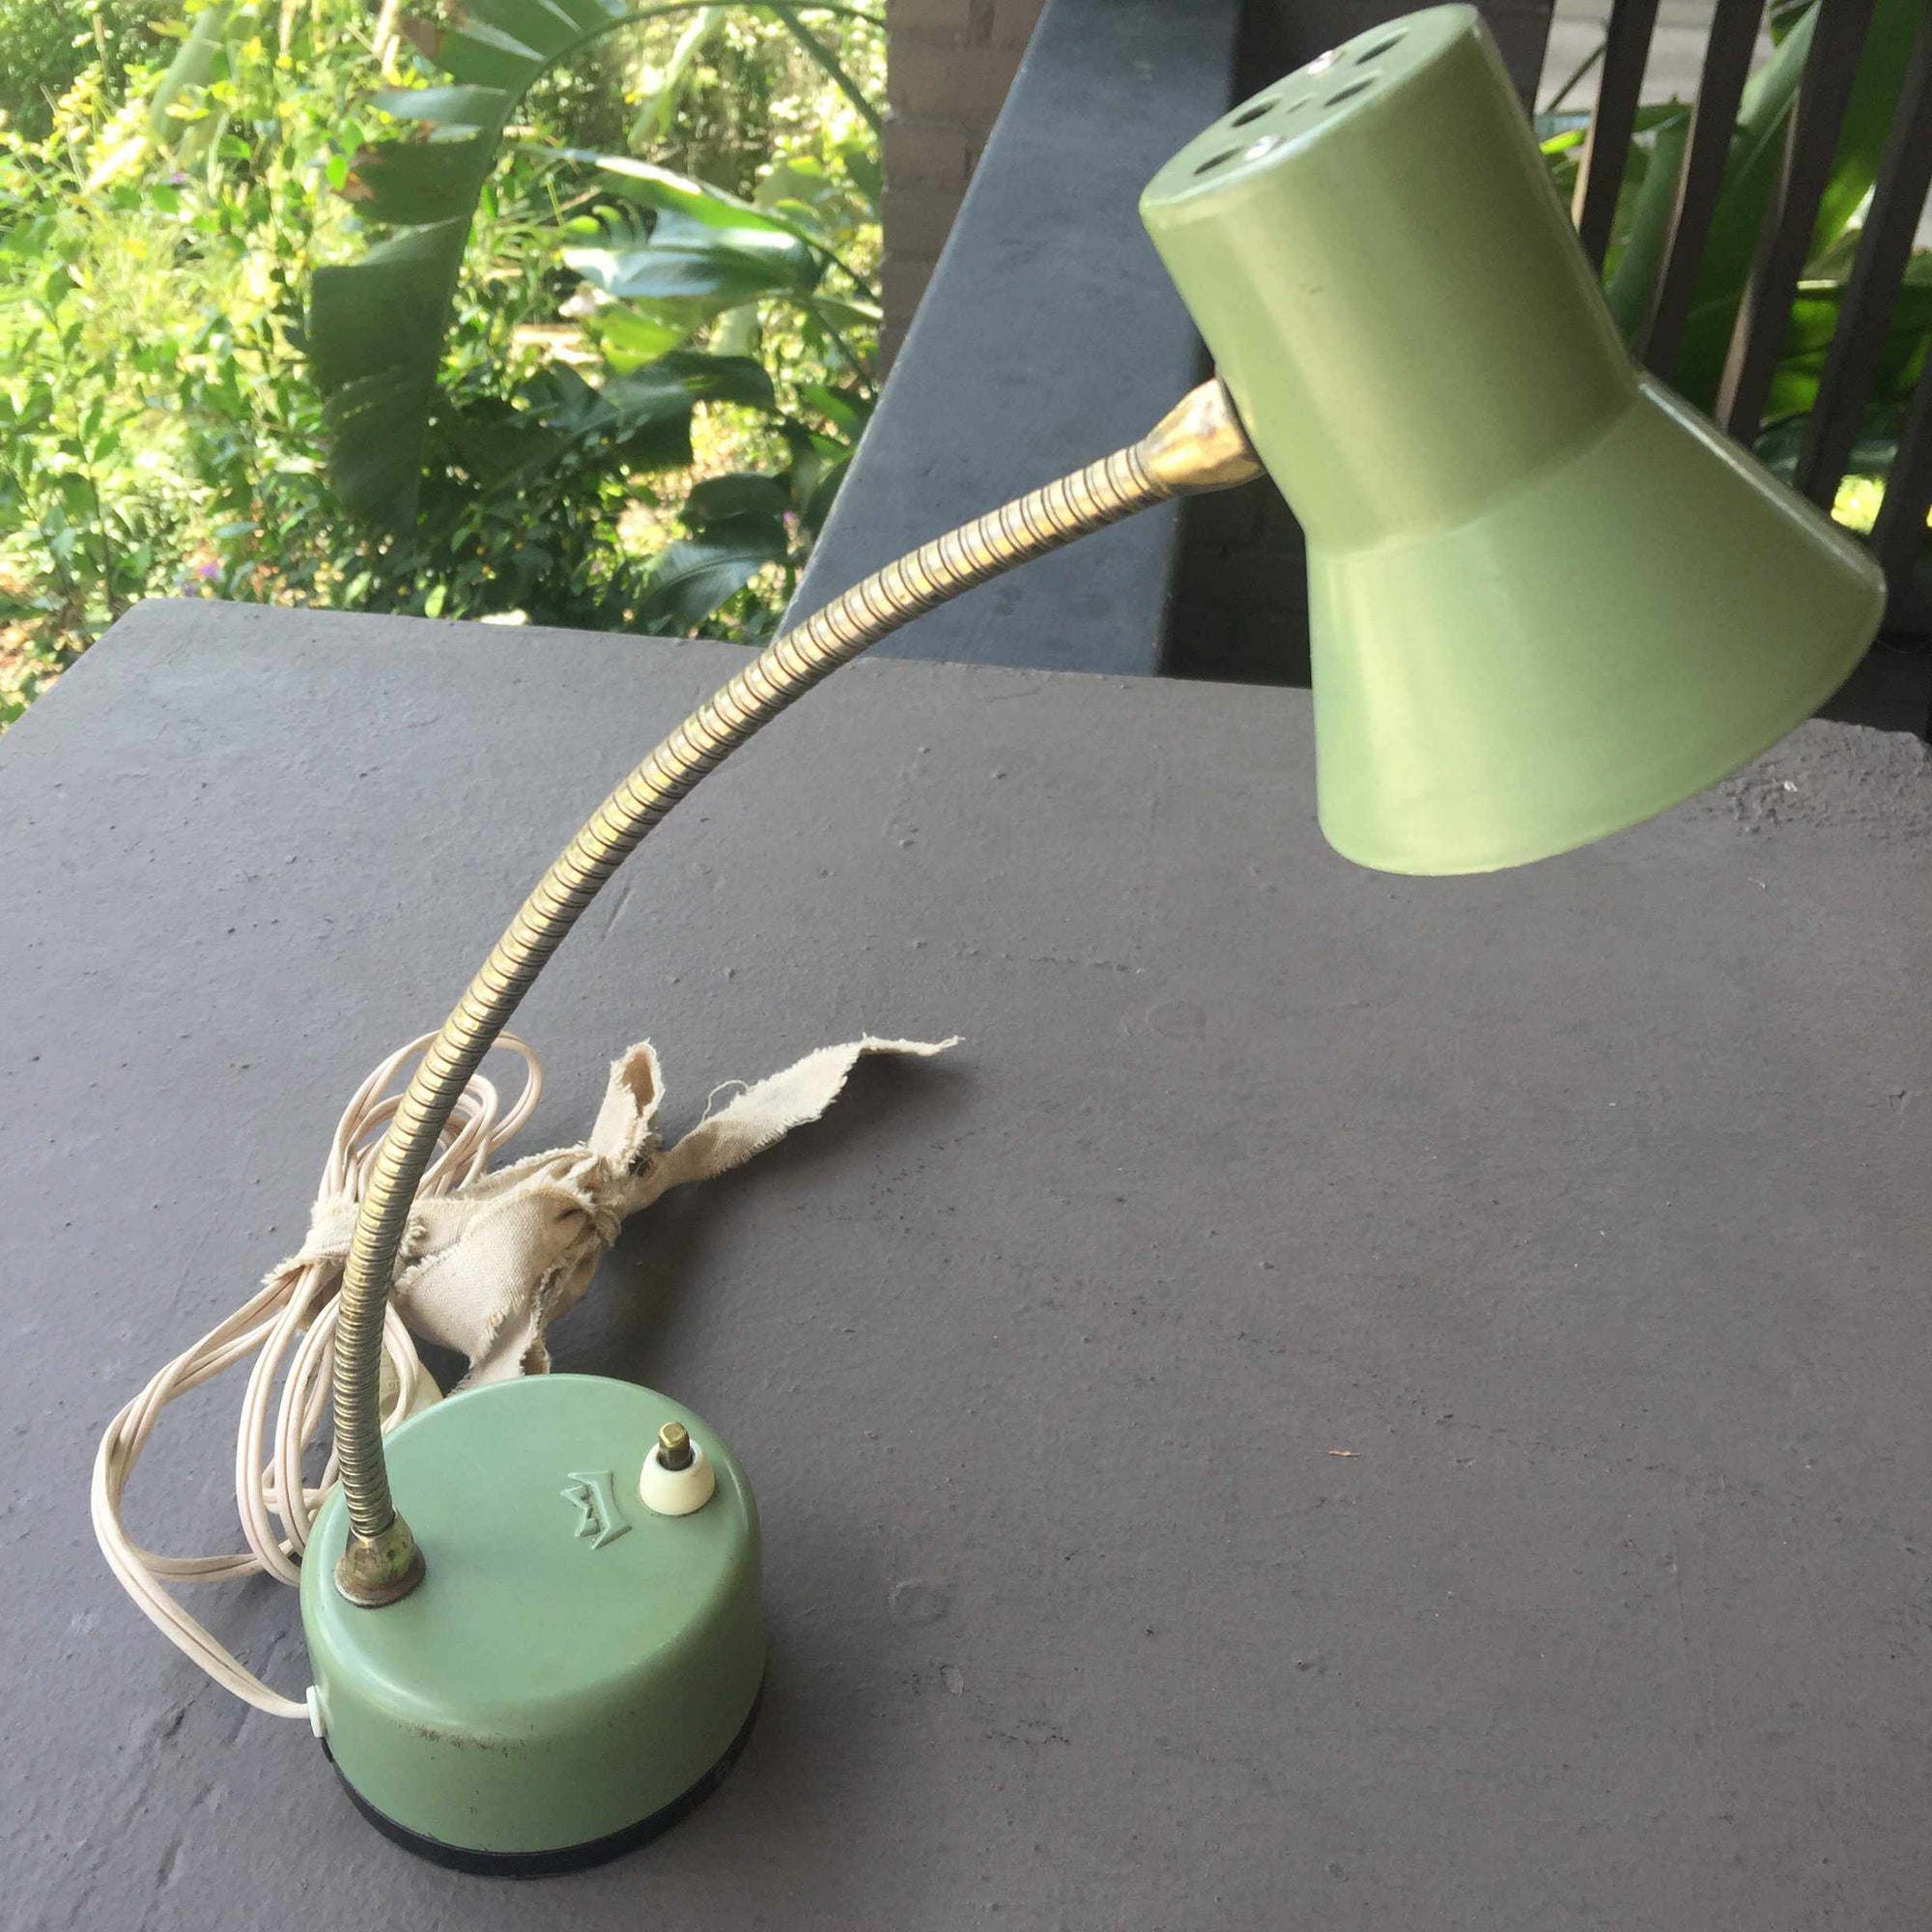 Vintage Mobilette Goose Neck Desk Lamp-Accessories-Frivolous Dry Goods-The Paper Seahorse